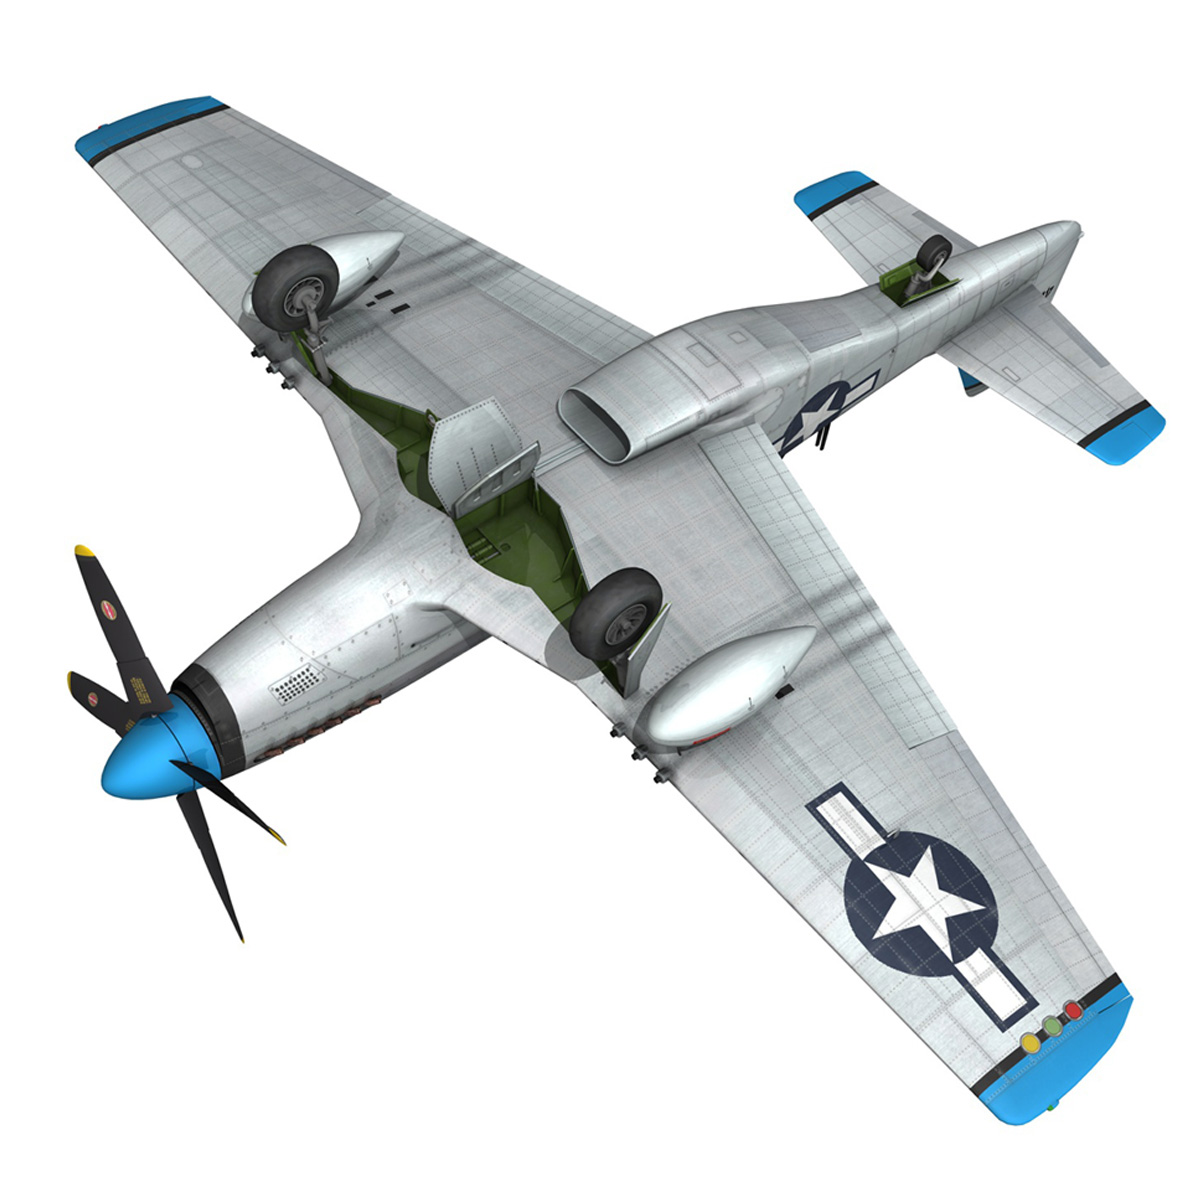 north american p-51d – mustang – mary alyce 3d model 3ds fbx c4d lwo obj 267582